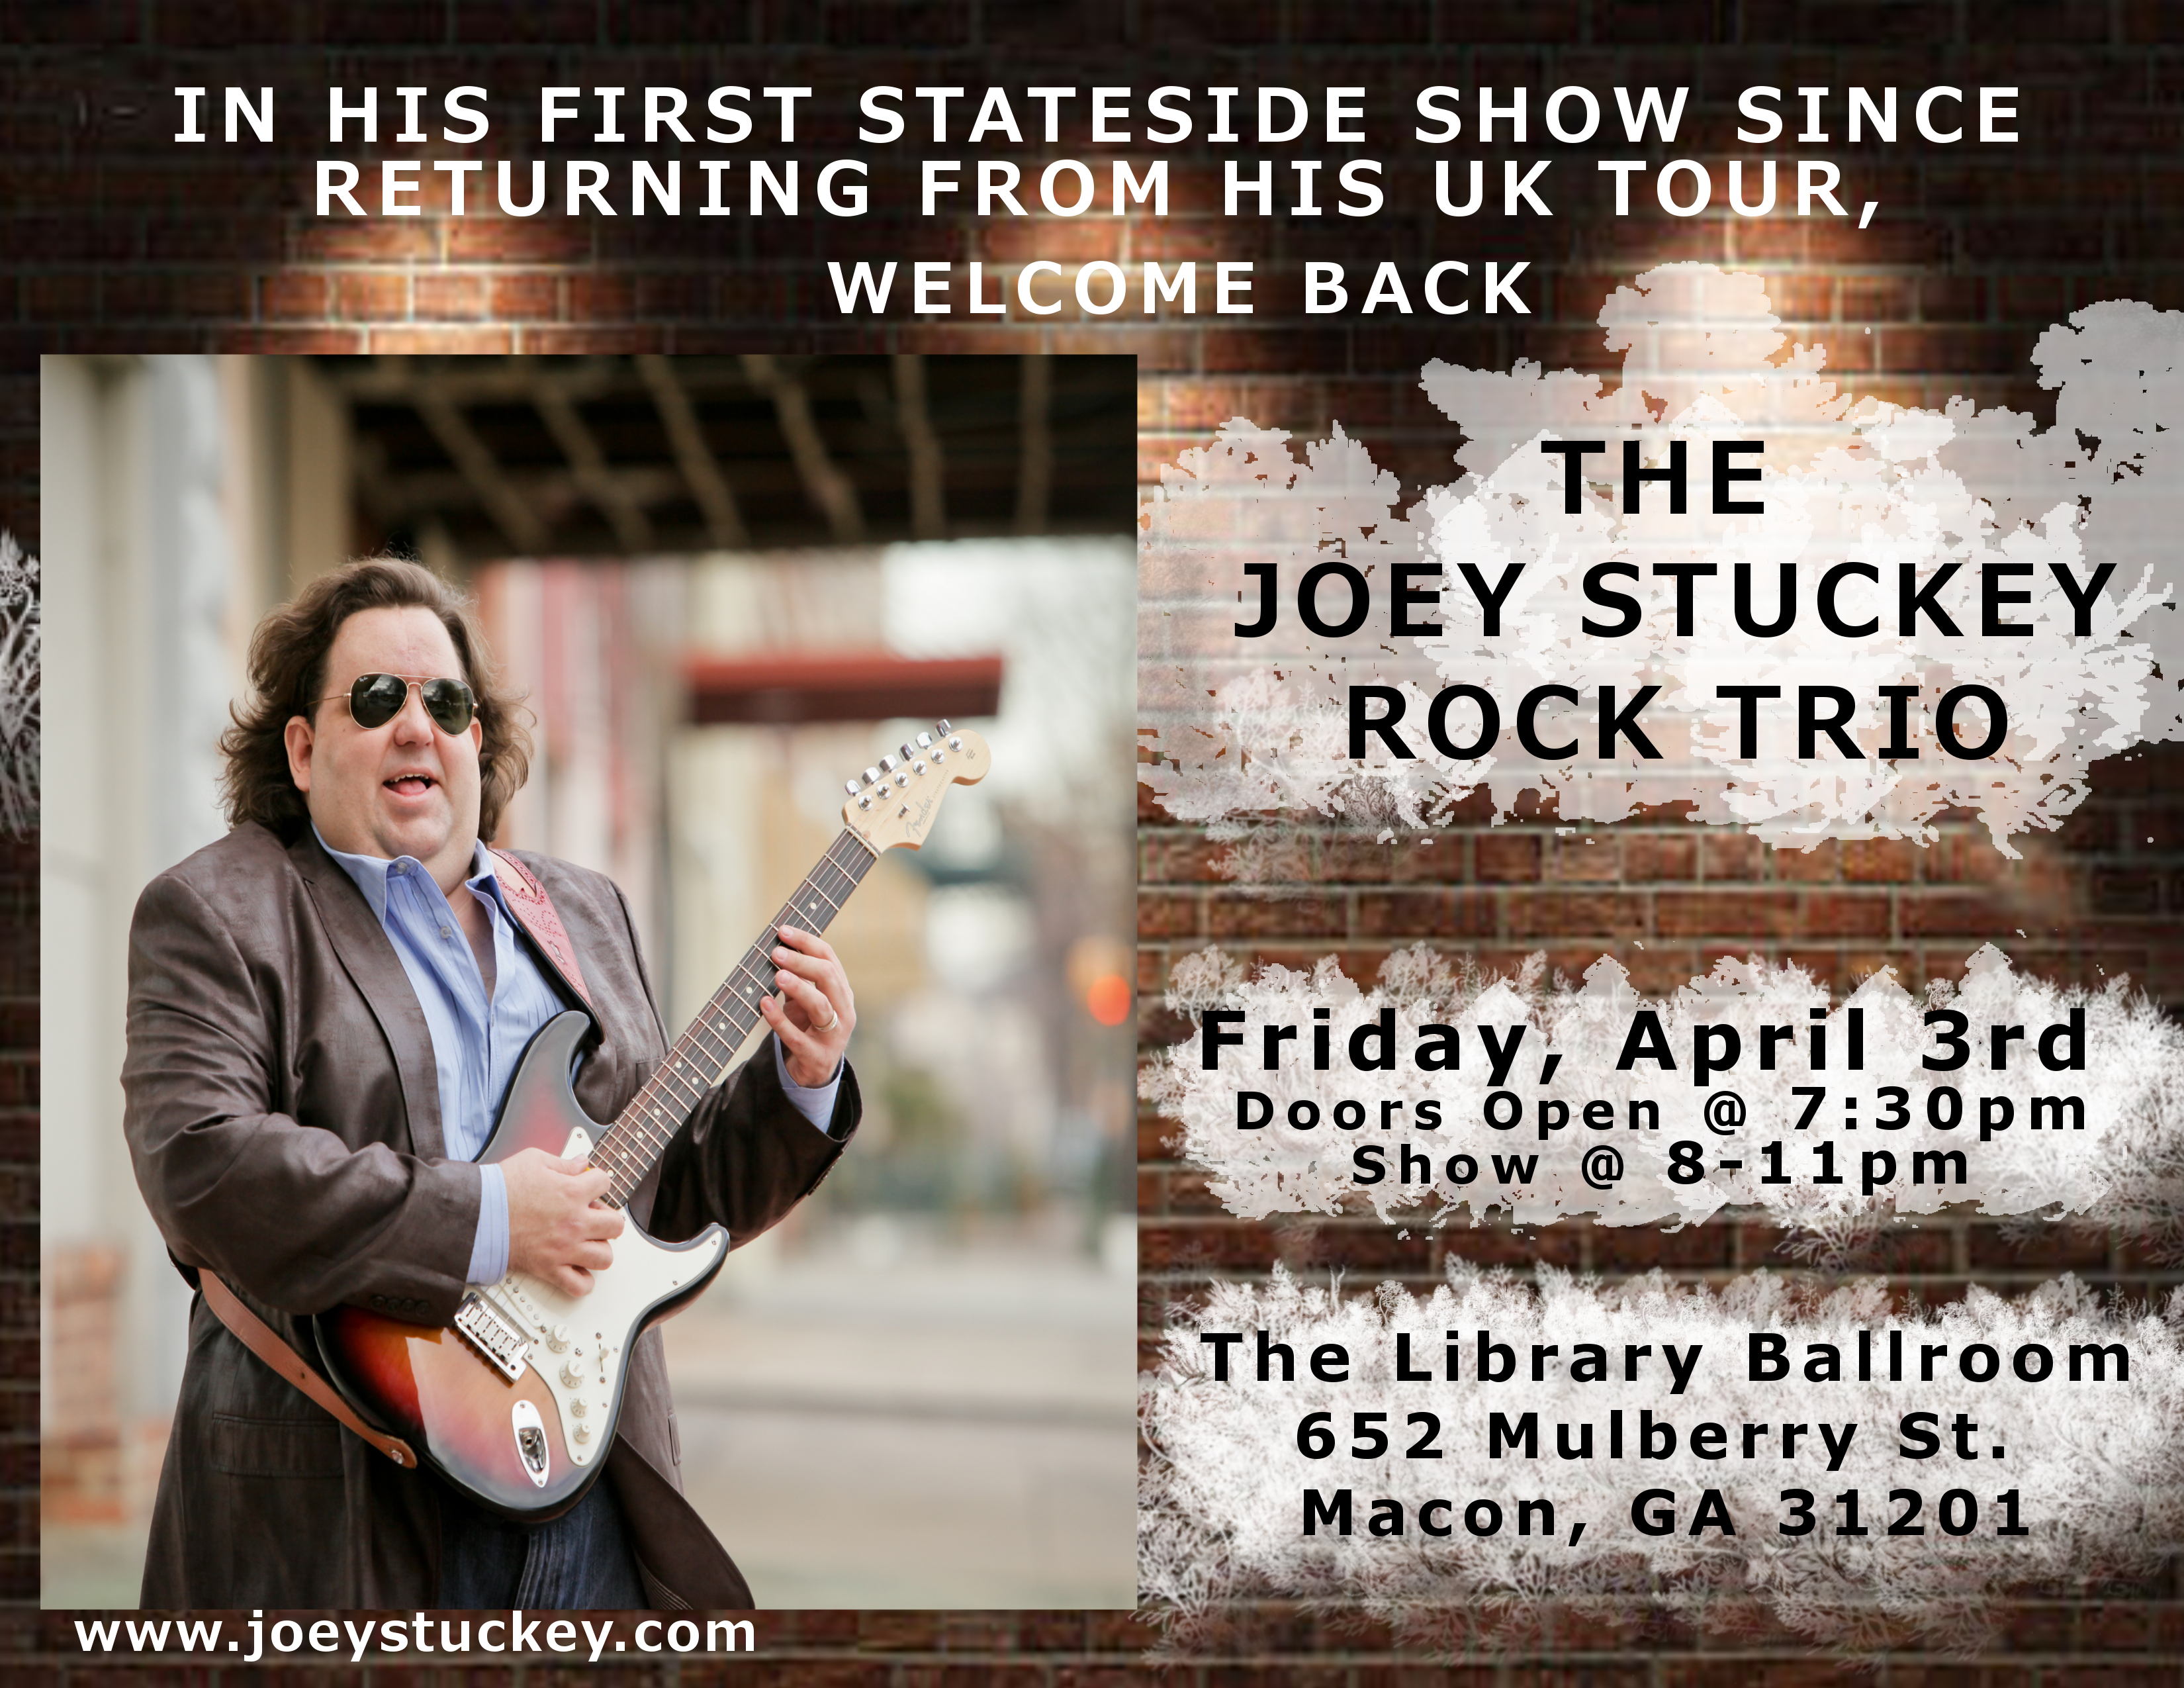 Joey Stuckey Rock Trio